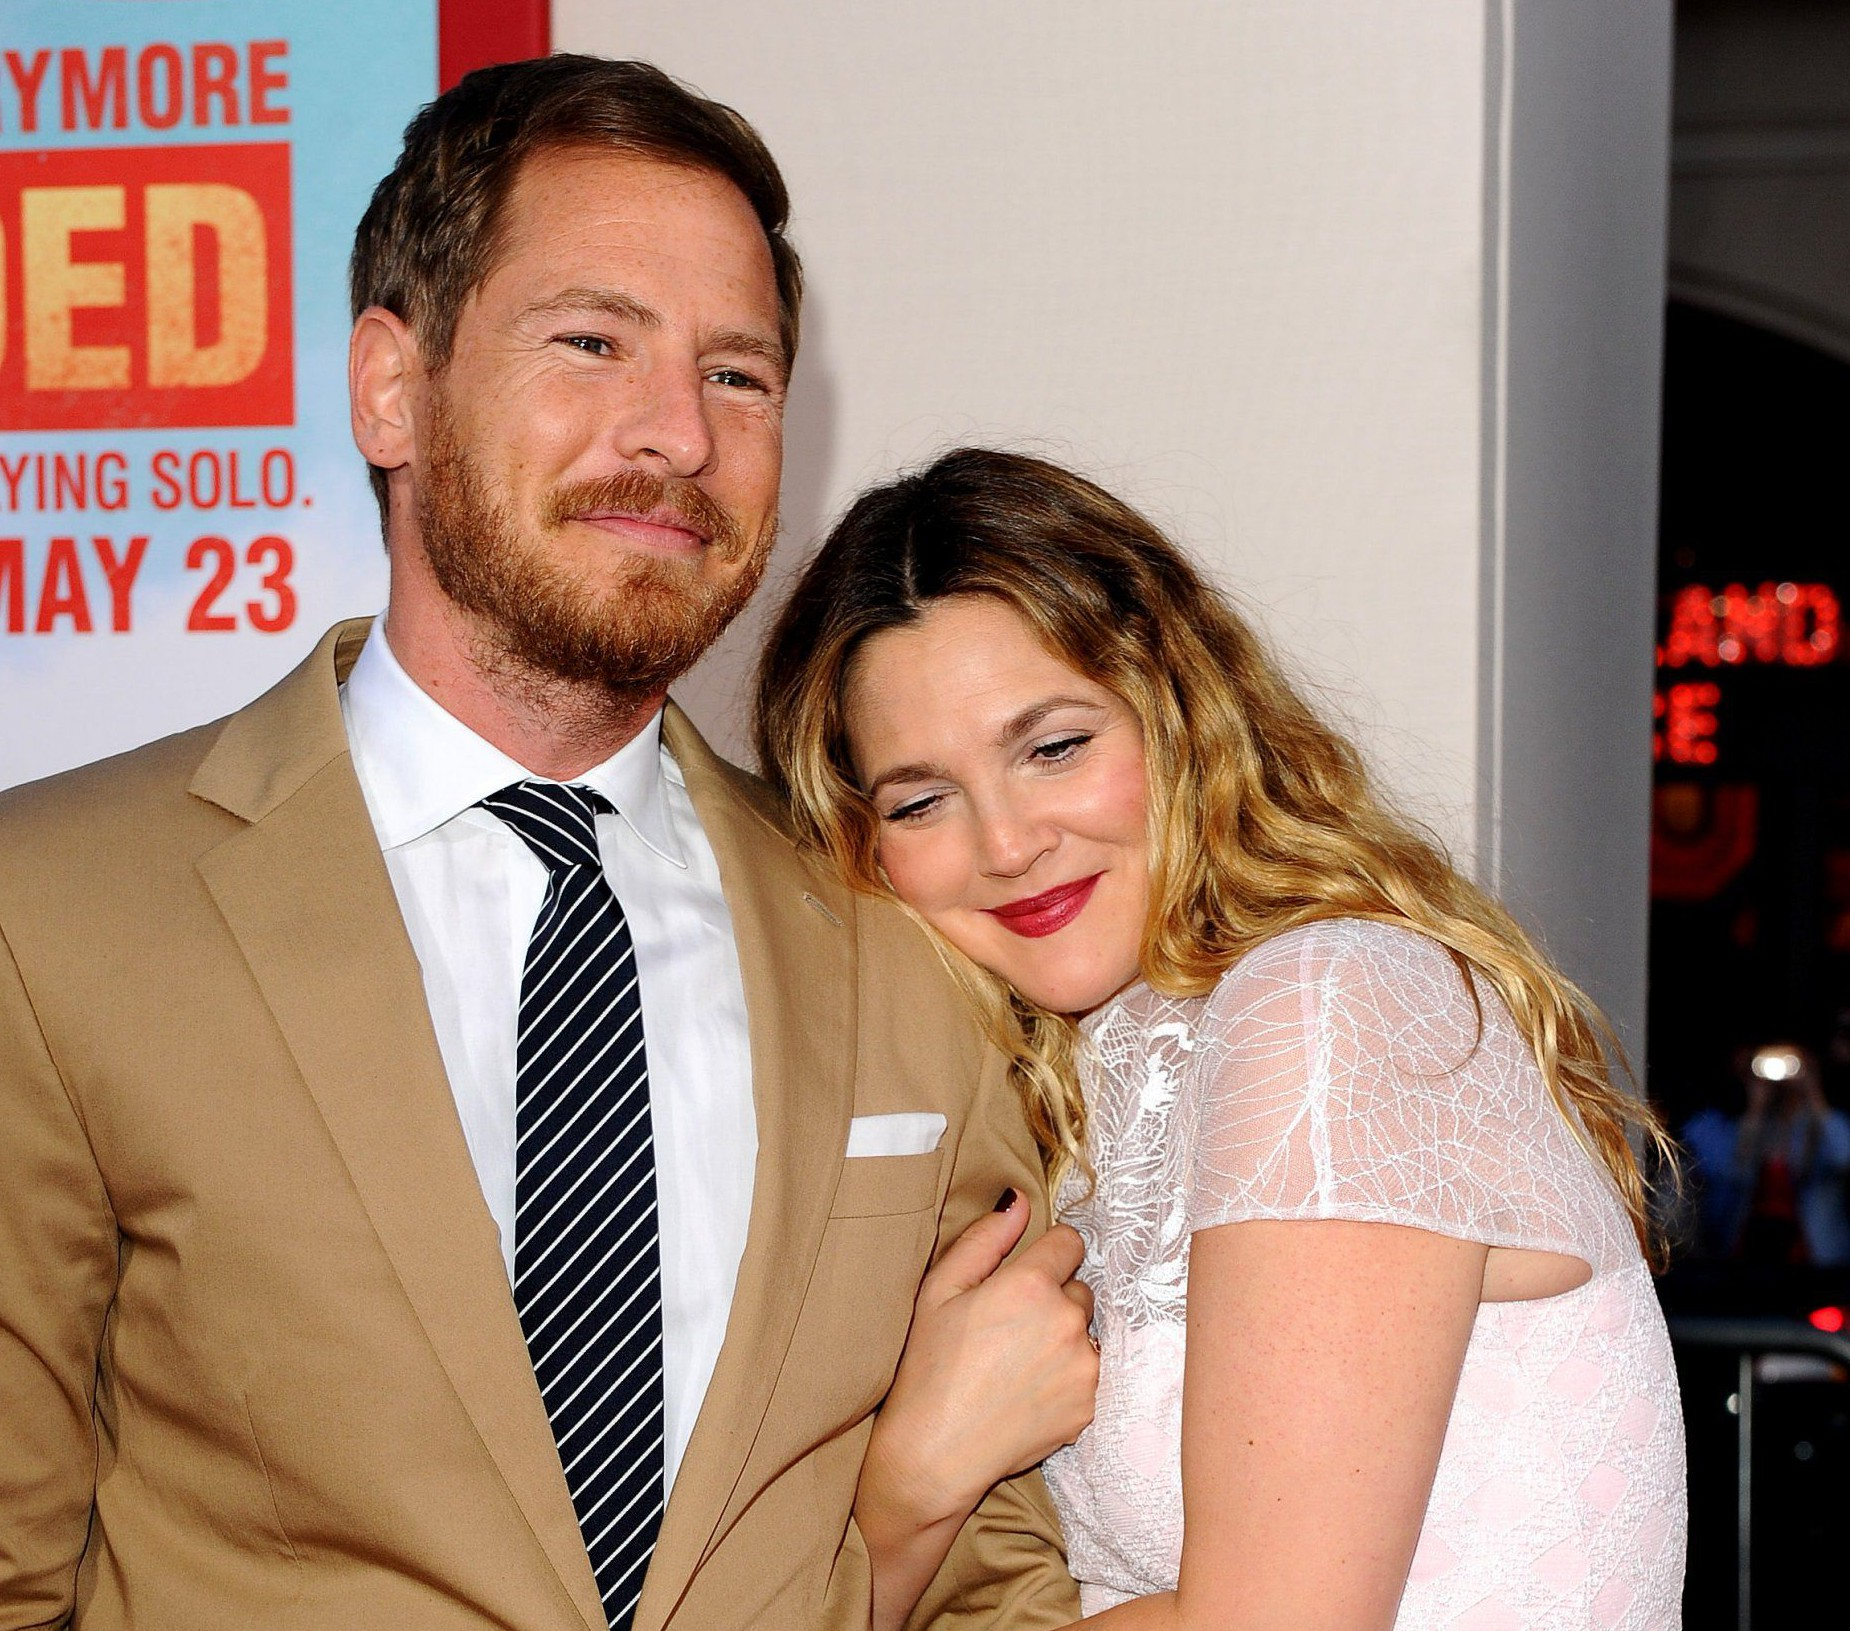 Drew Barrymore 'feels like a failure' because her marriage to Will Kopelman didn't work